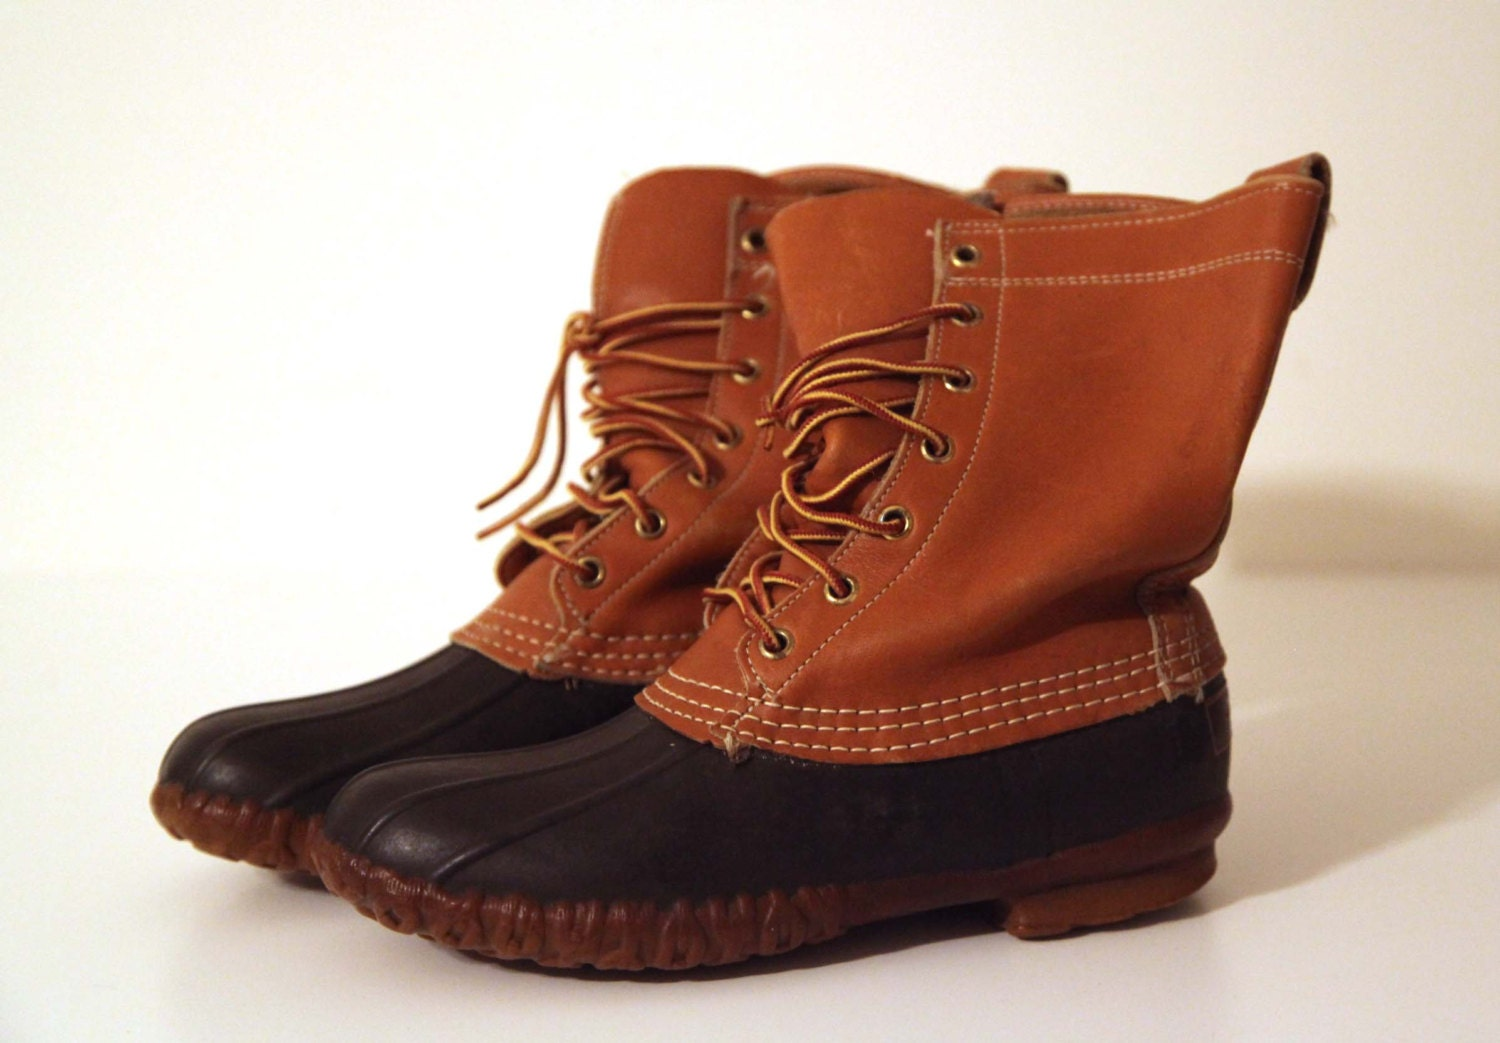 New Size 775 Women39s Vintage LL Bean Duck Boots Leather